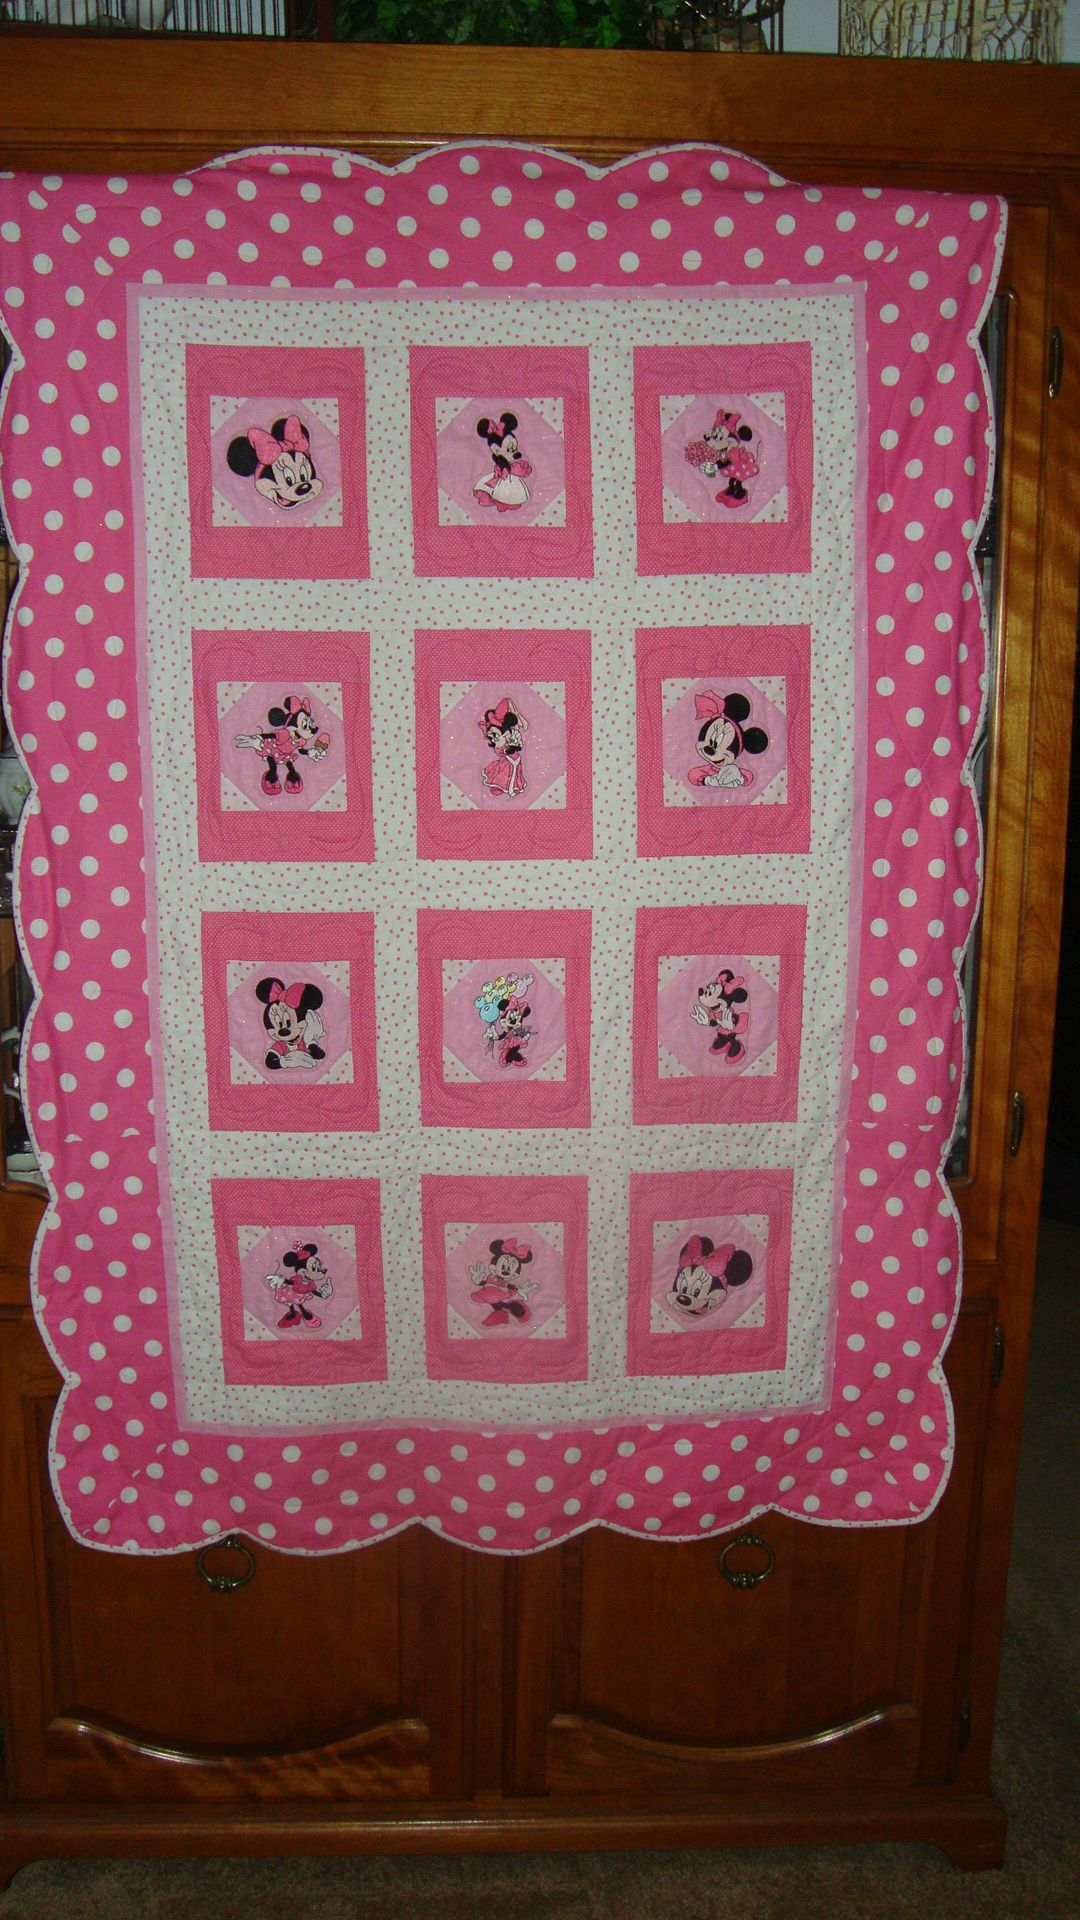 Granddaughter S Minnie Mouse Quilt In Hot Pink Poke A Dots Mickey Mouse Quilt Disney Quilt Baby Quilts